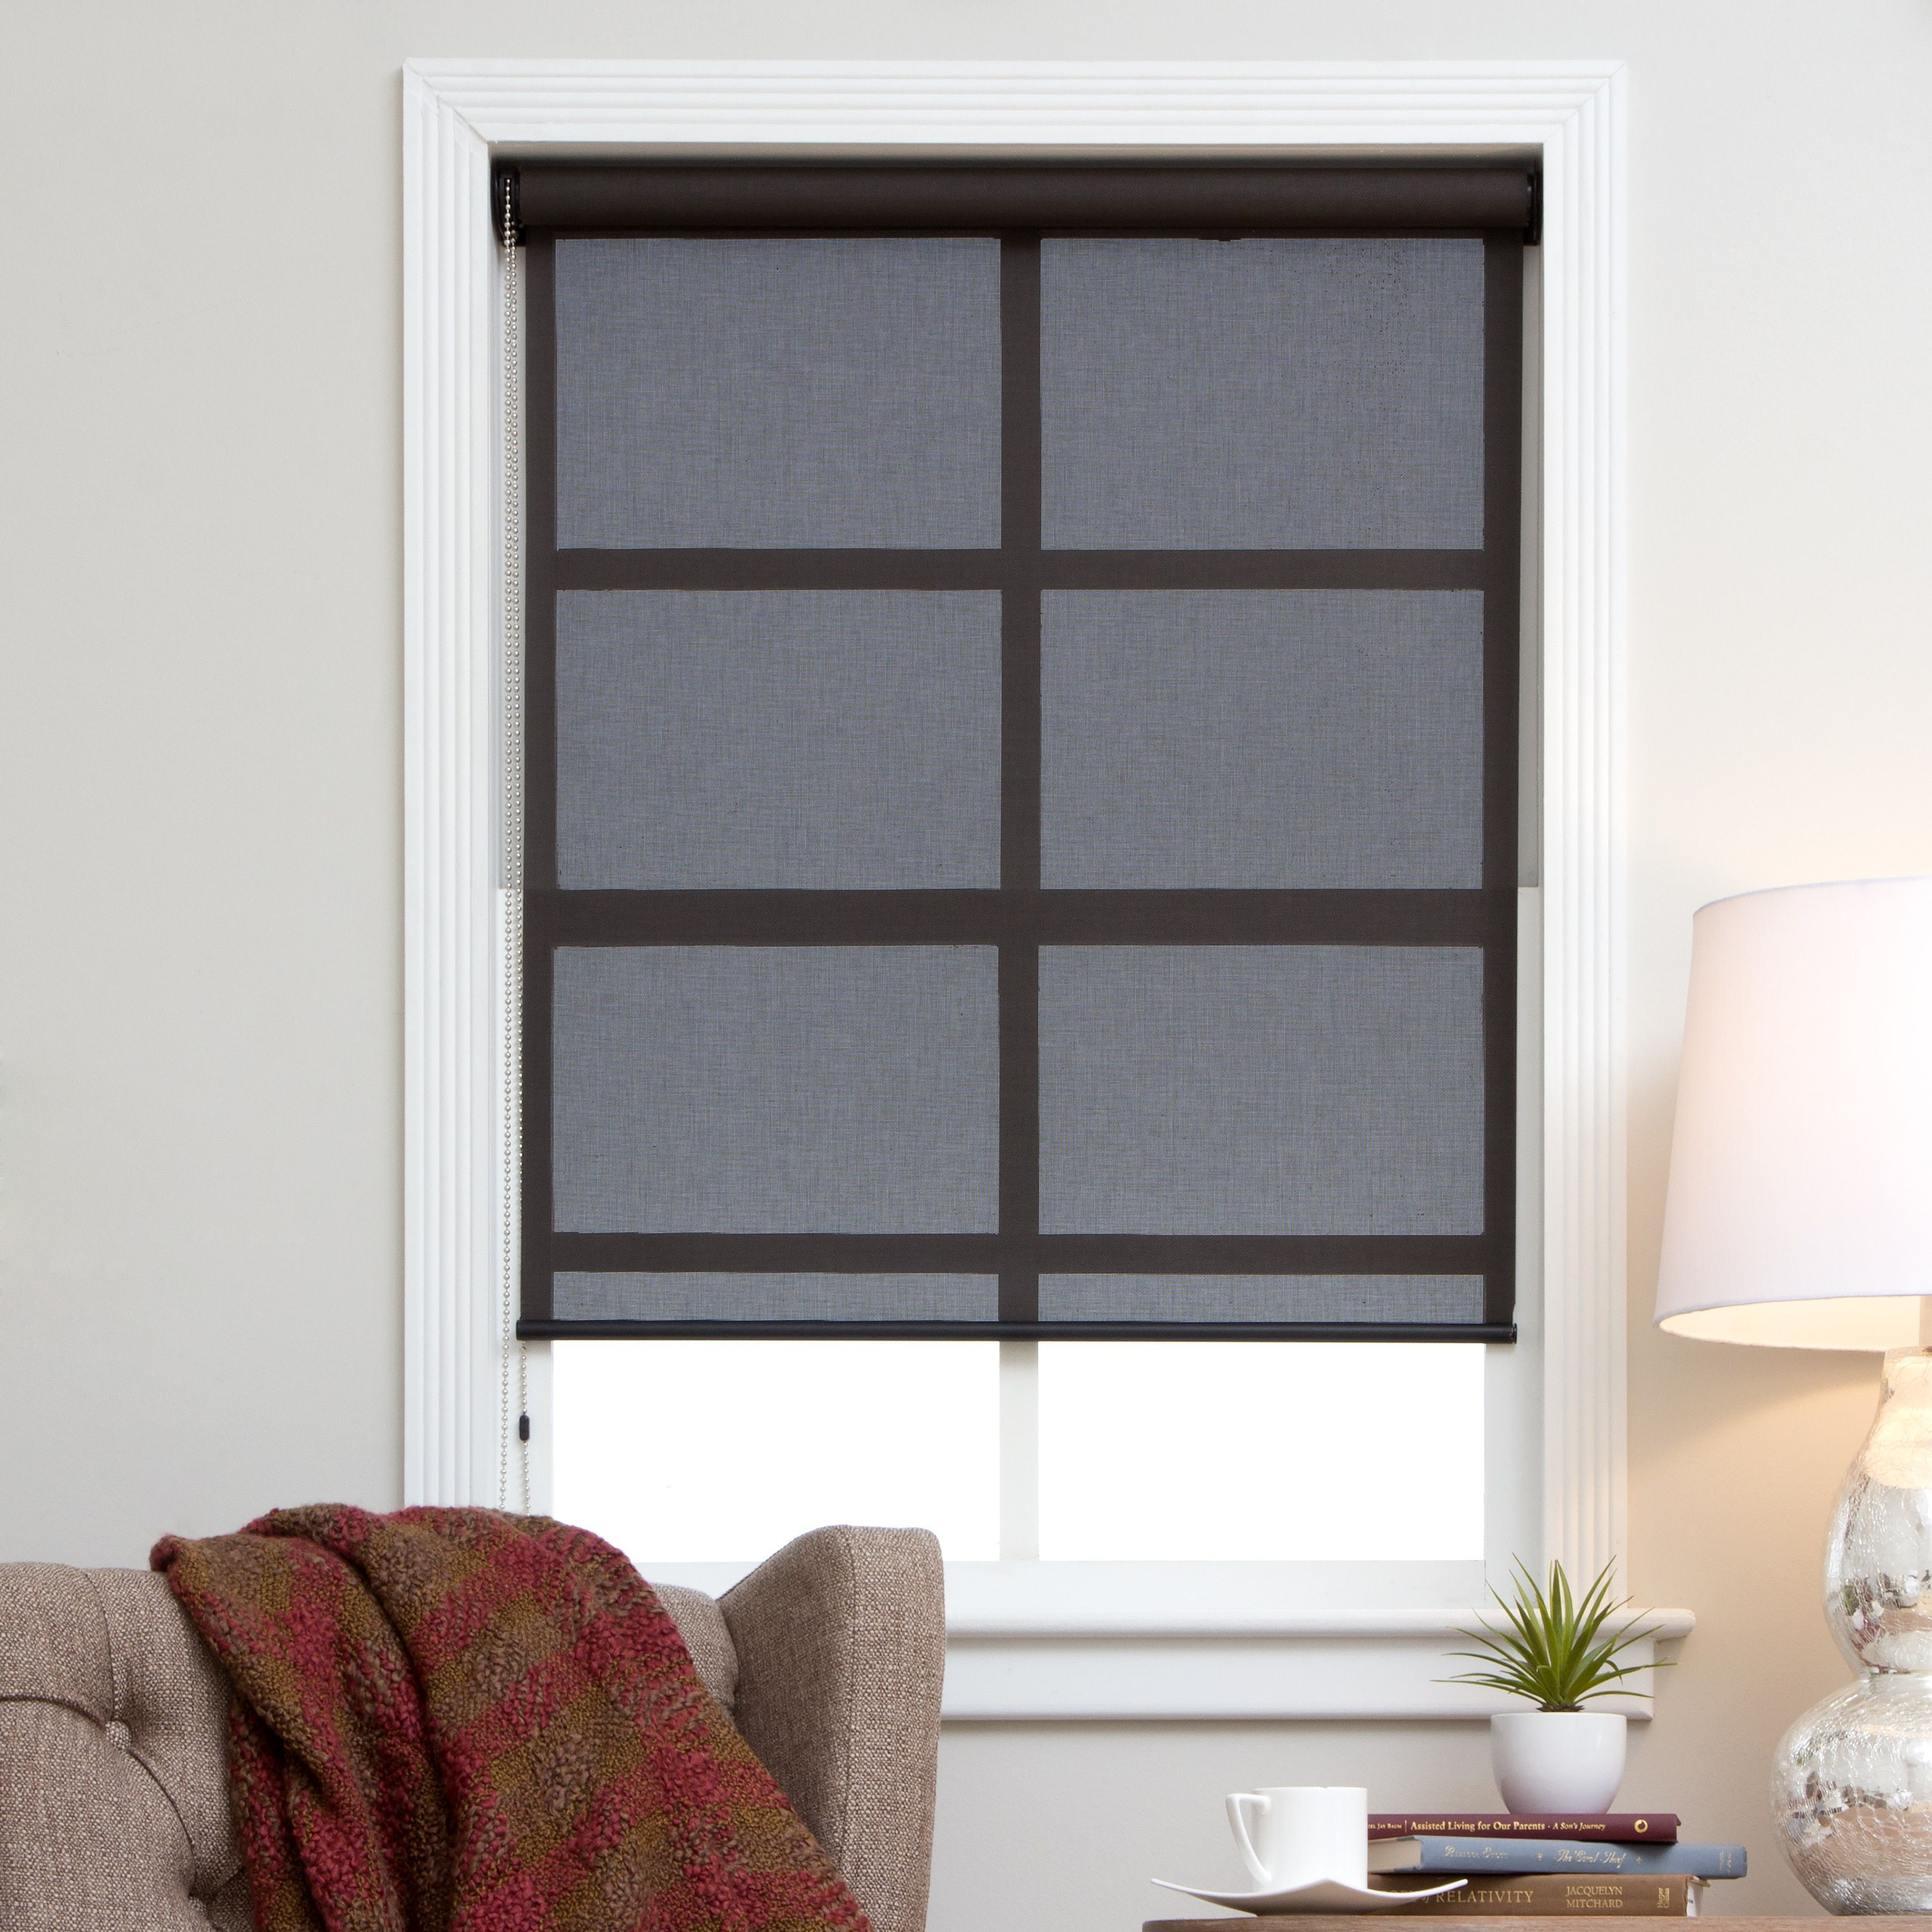 Arlo blinds brownblack continuous chain solar shades x